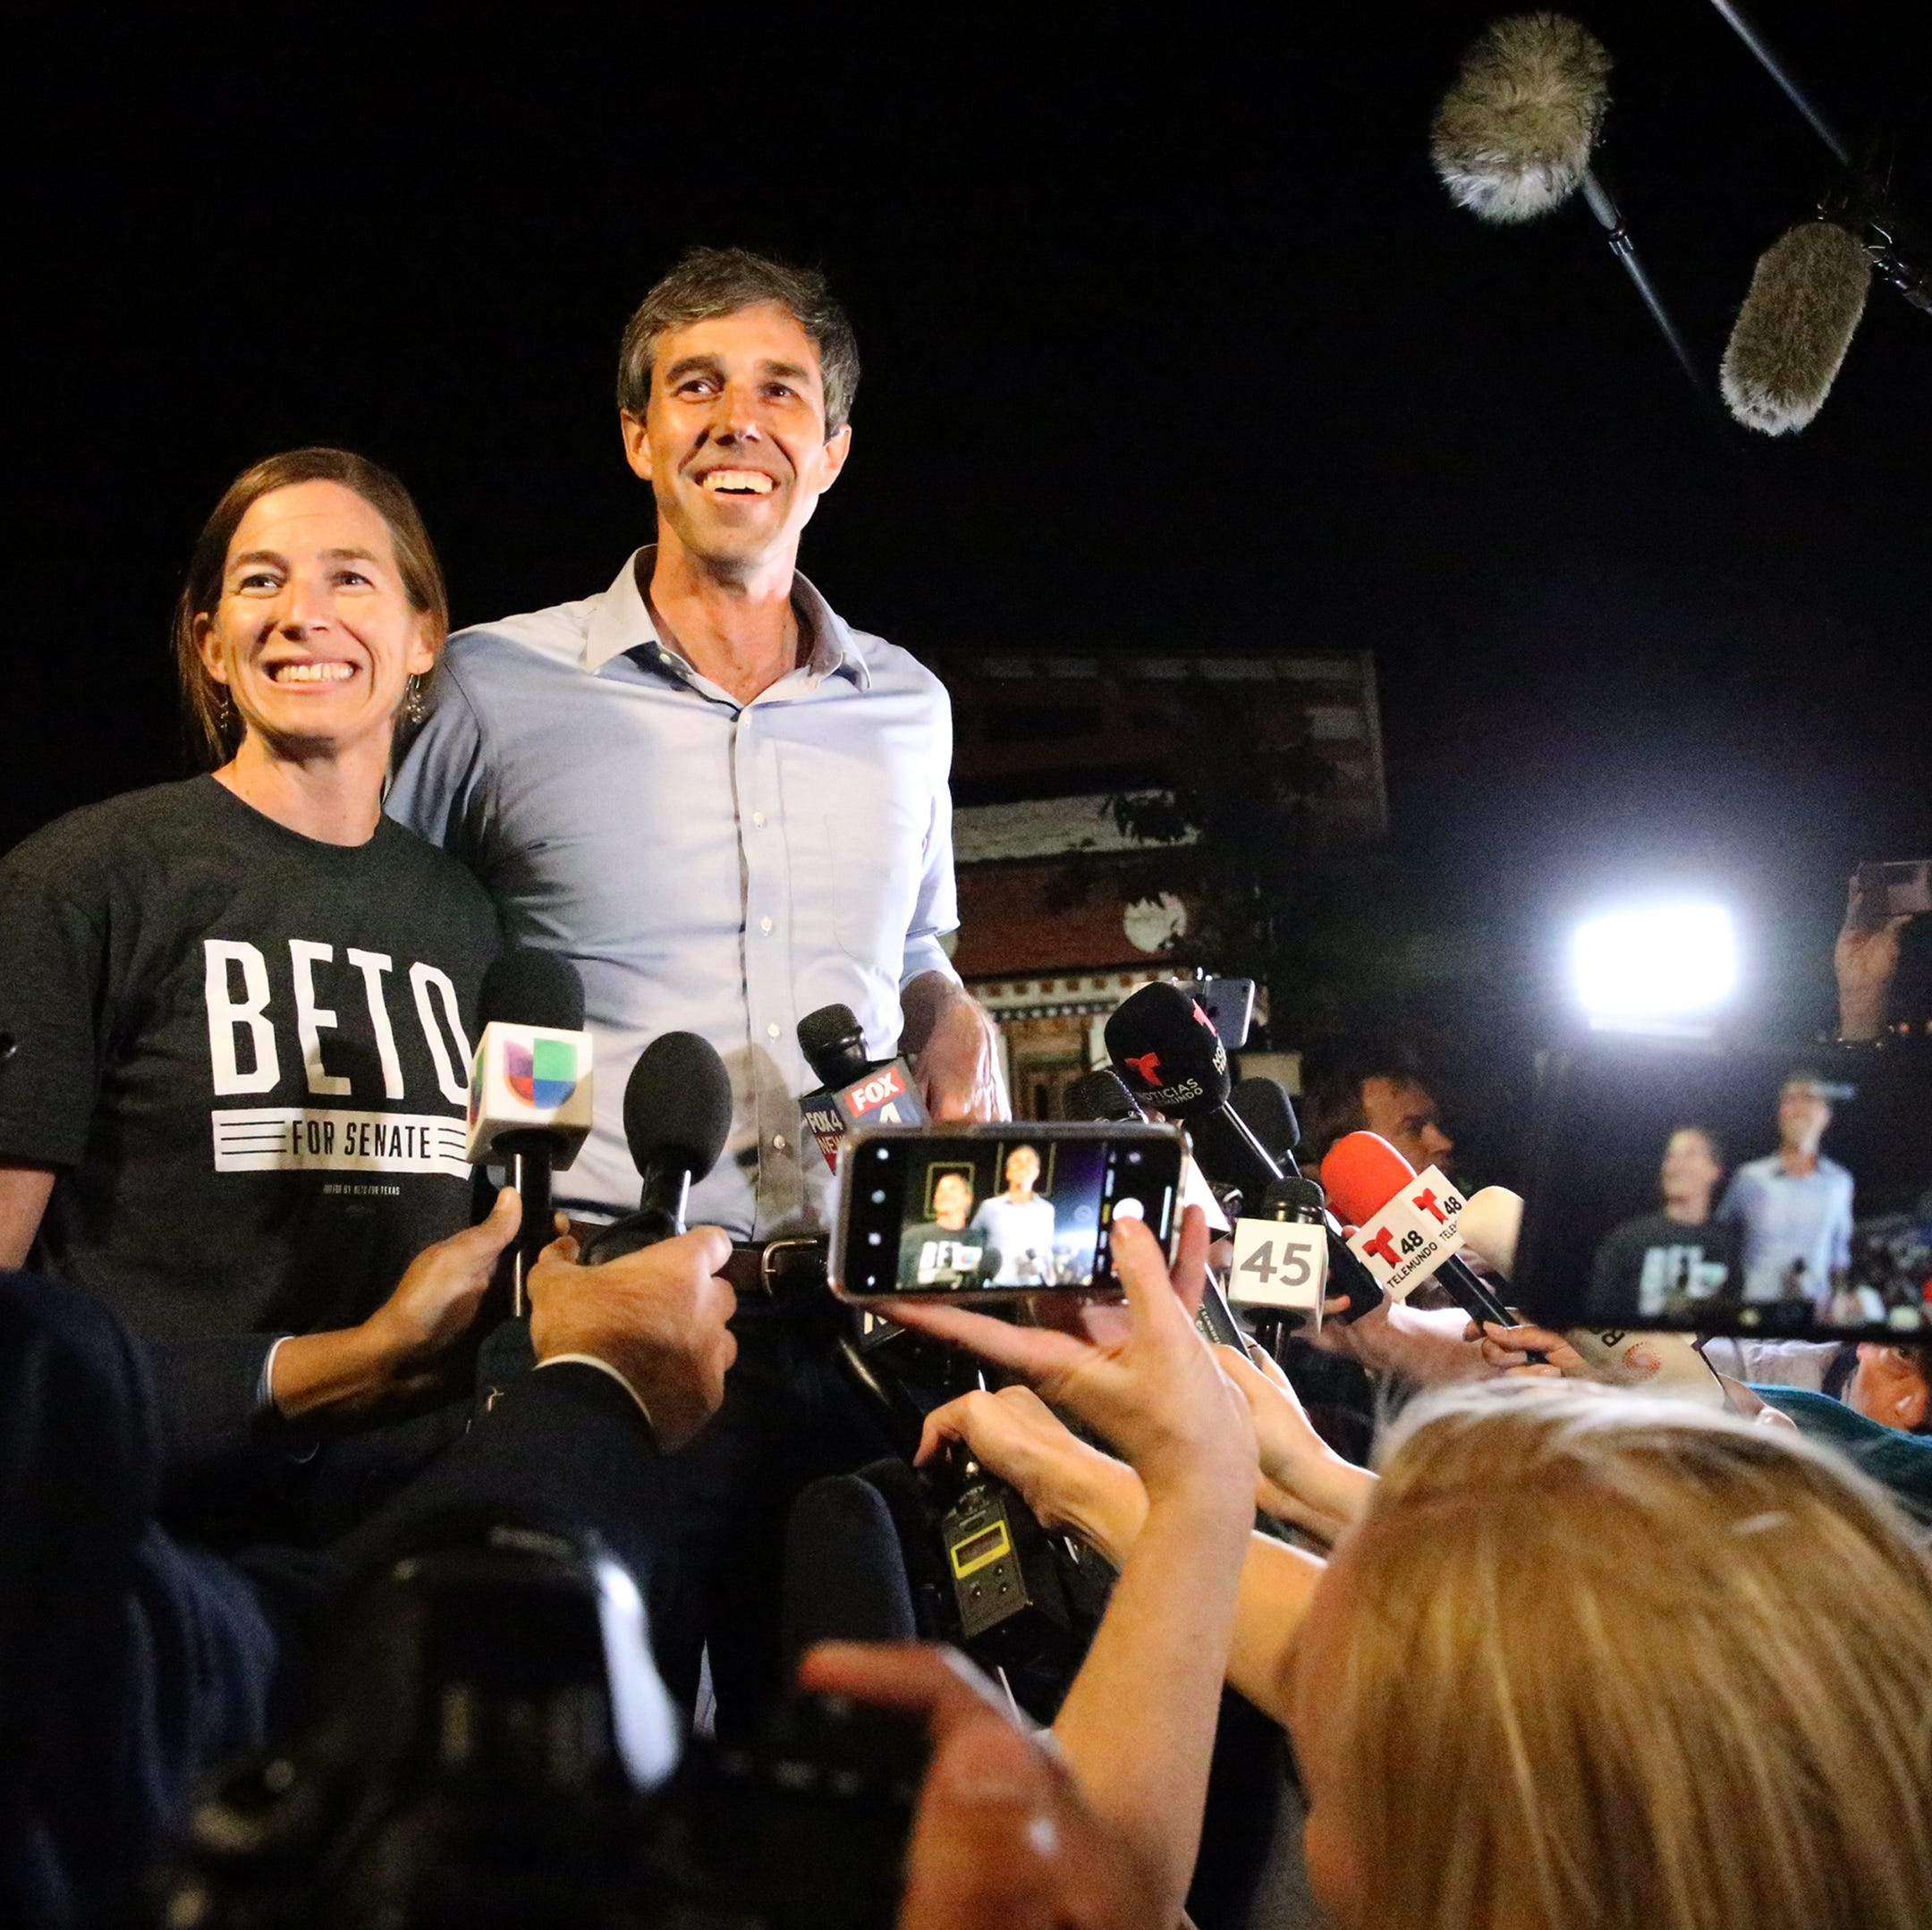 Beto net worth: Personal finances disclosures indicate O'Rourke worth millions